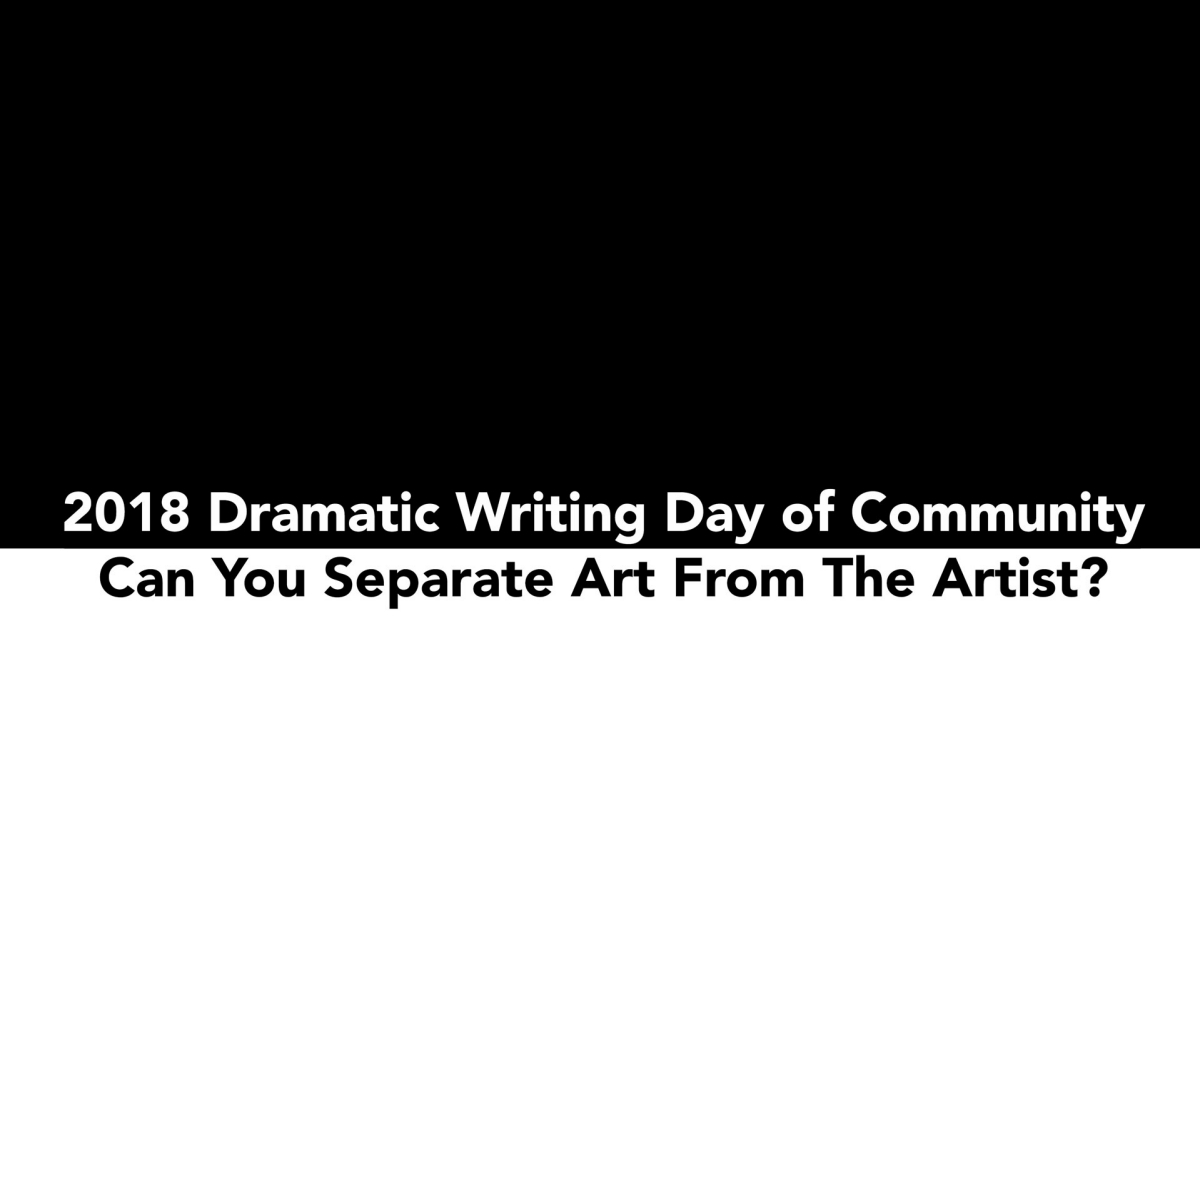 2018 Dramatic Writing Day of Community